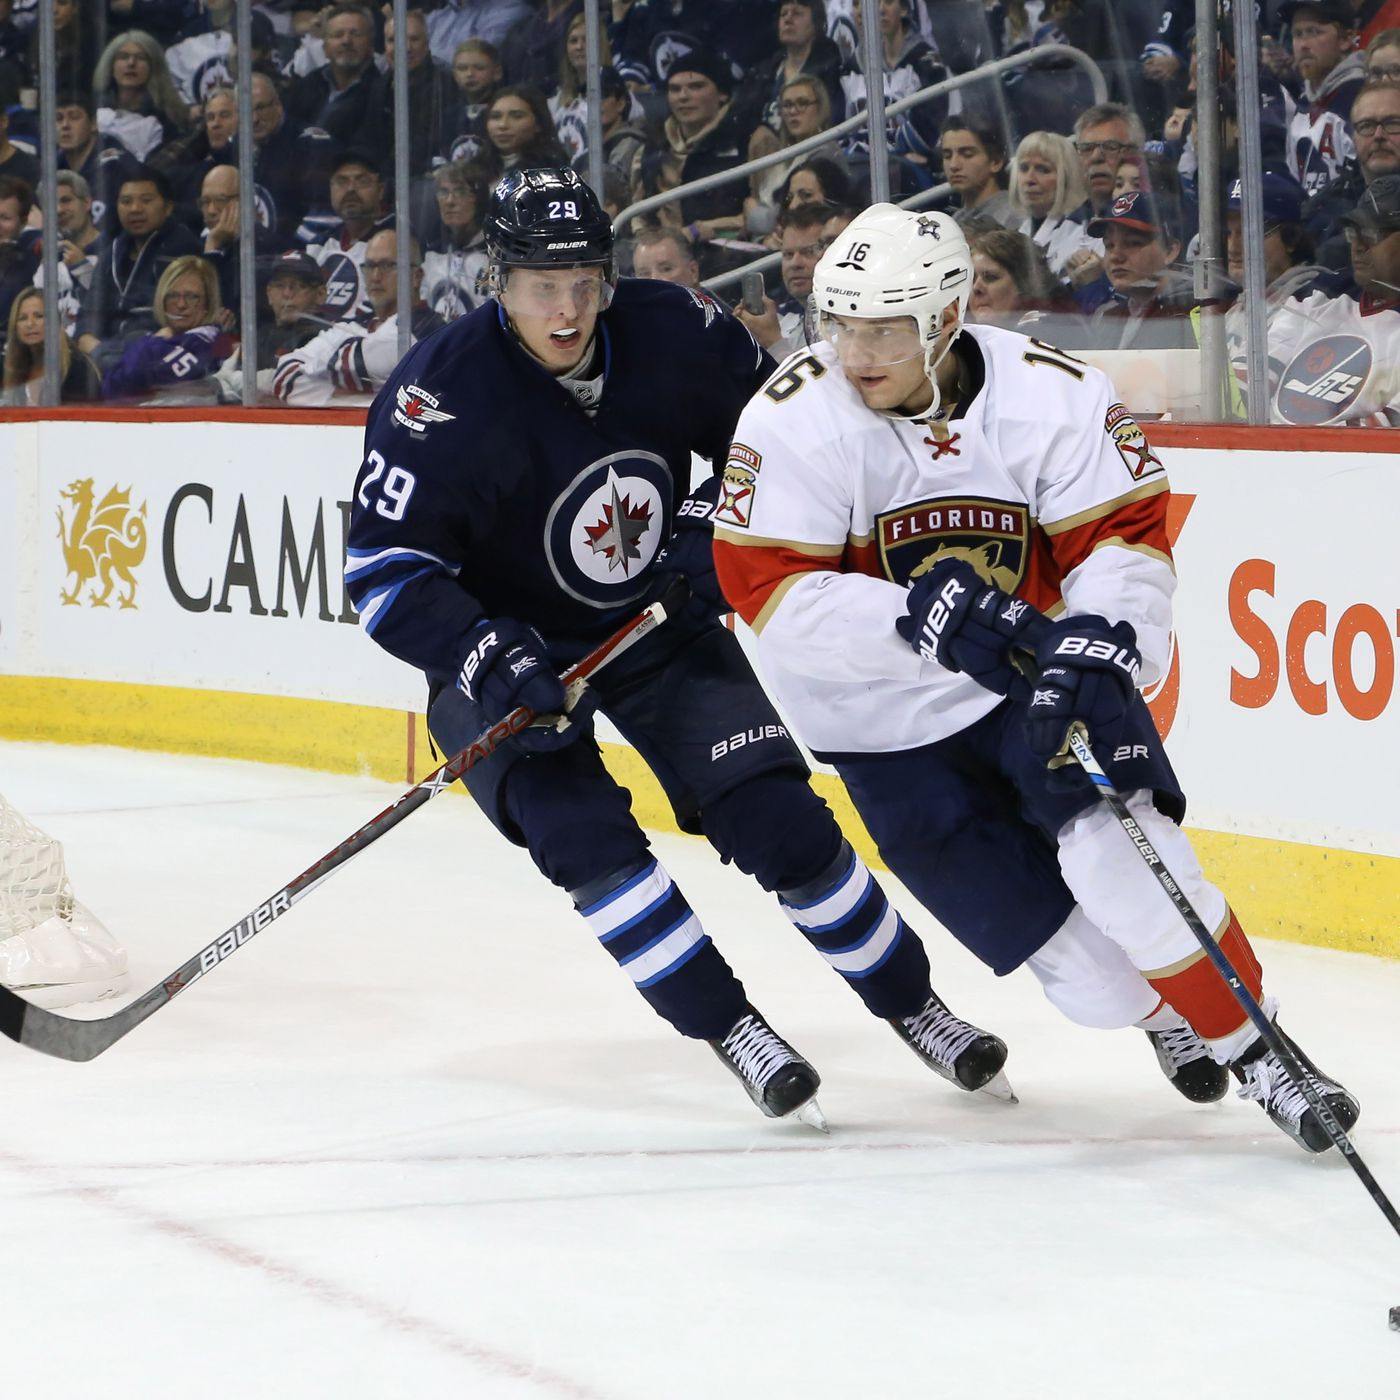 0348a3550dd 2018-19  Florida Panthers to play 2 games in Finland against the Winnipeg  Jets - Litter Box Cats